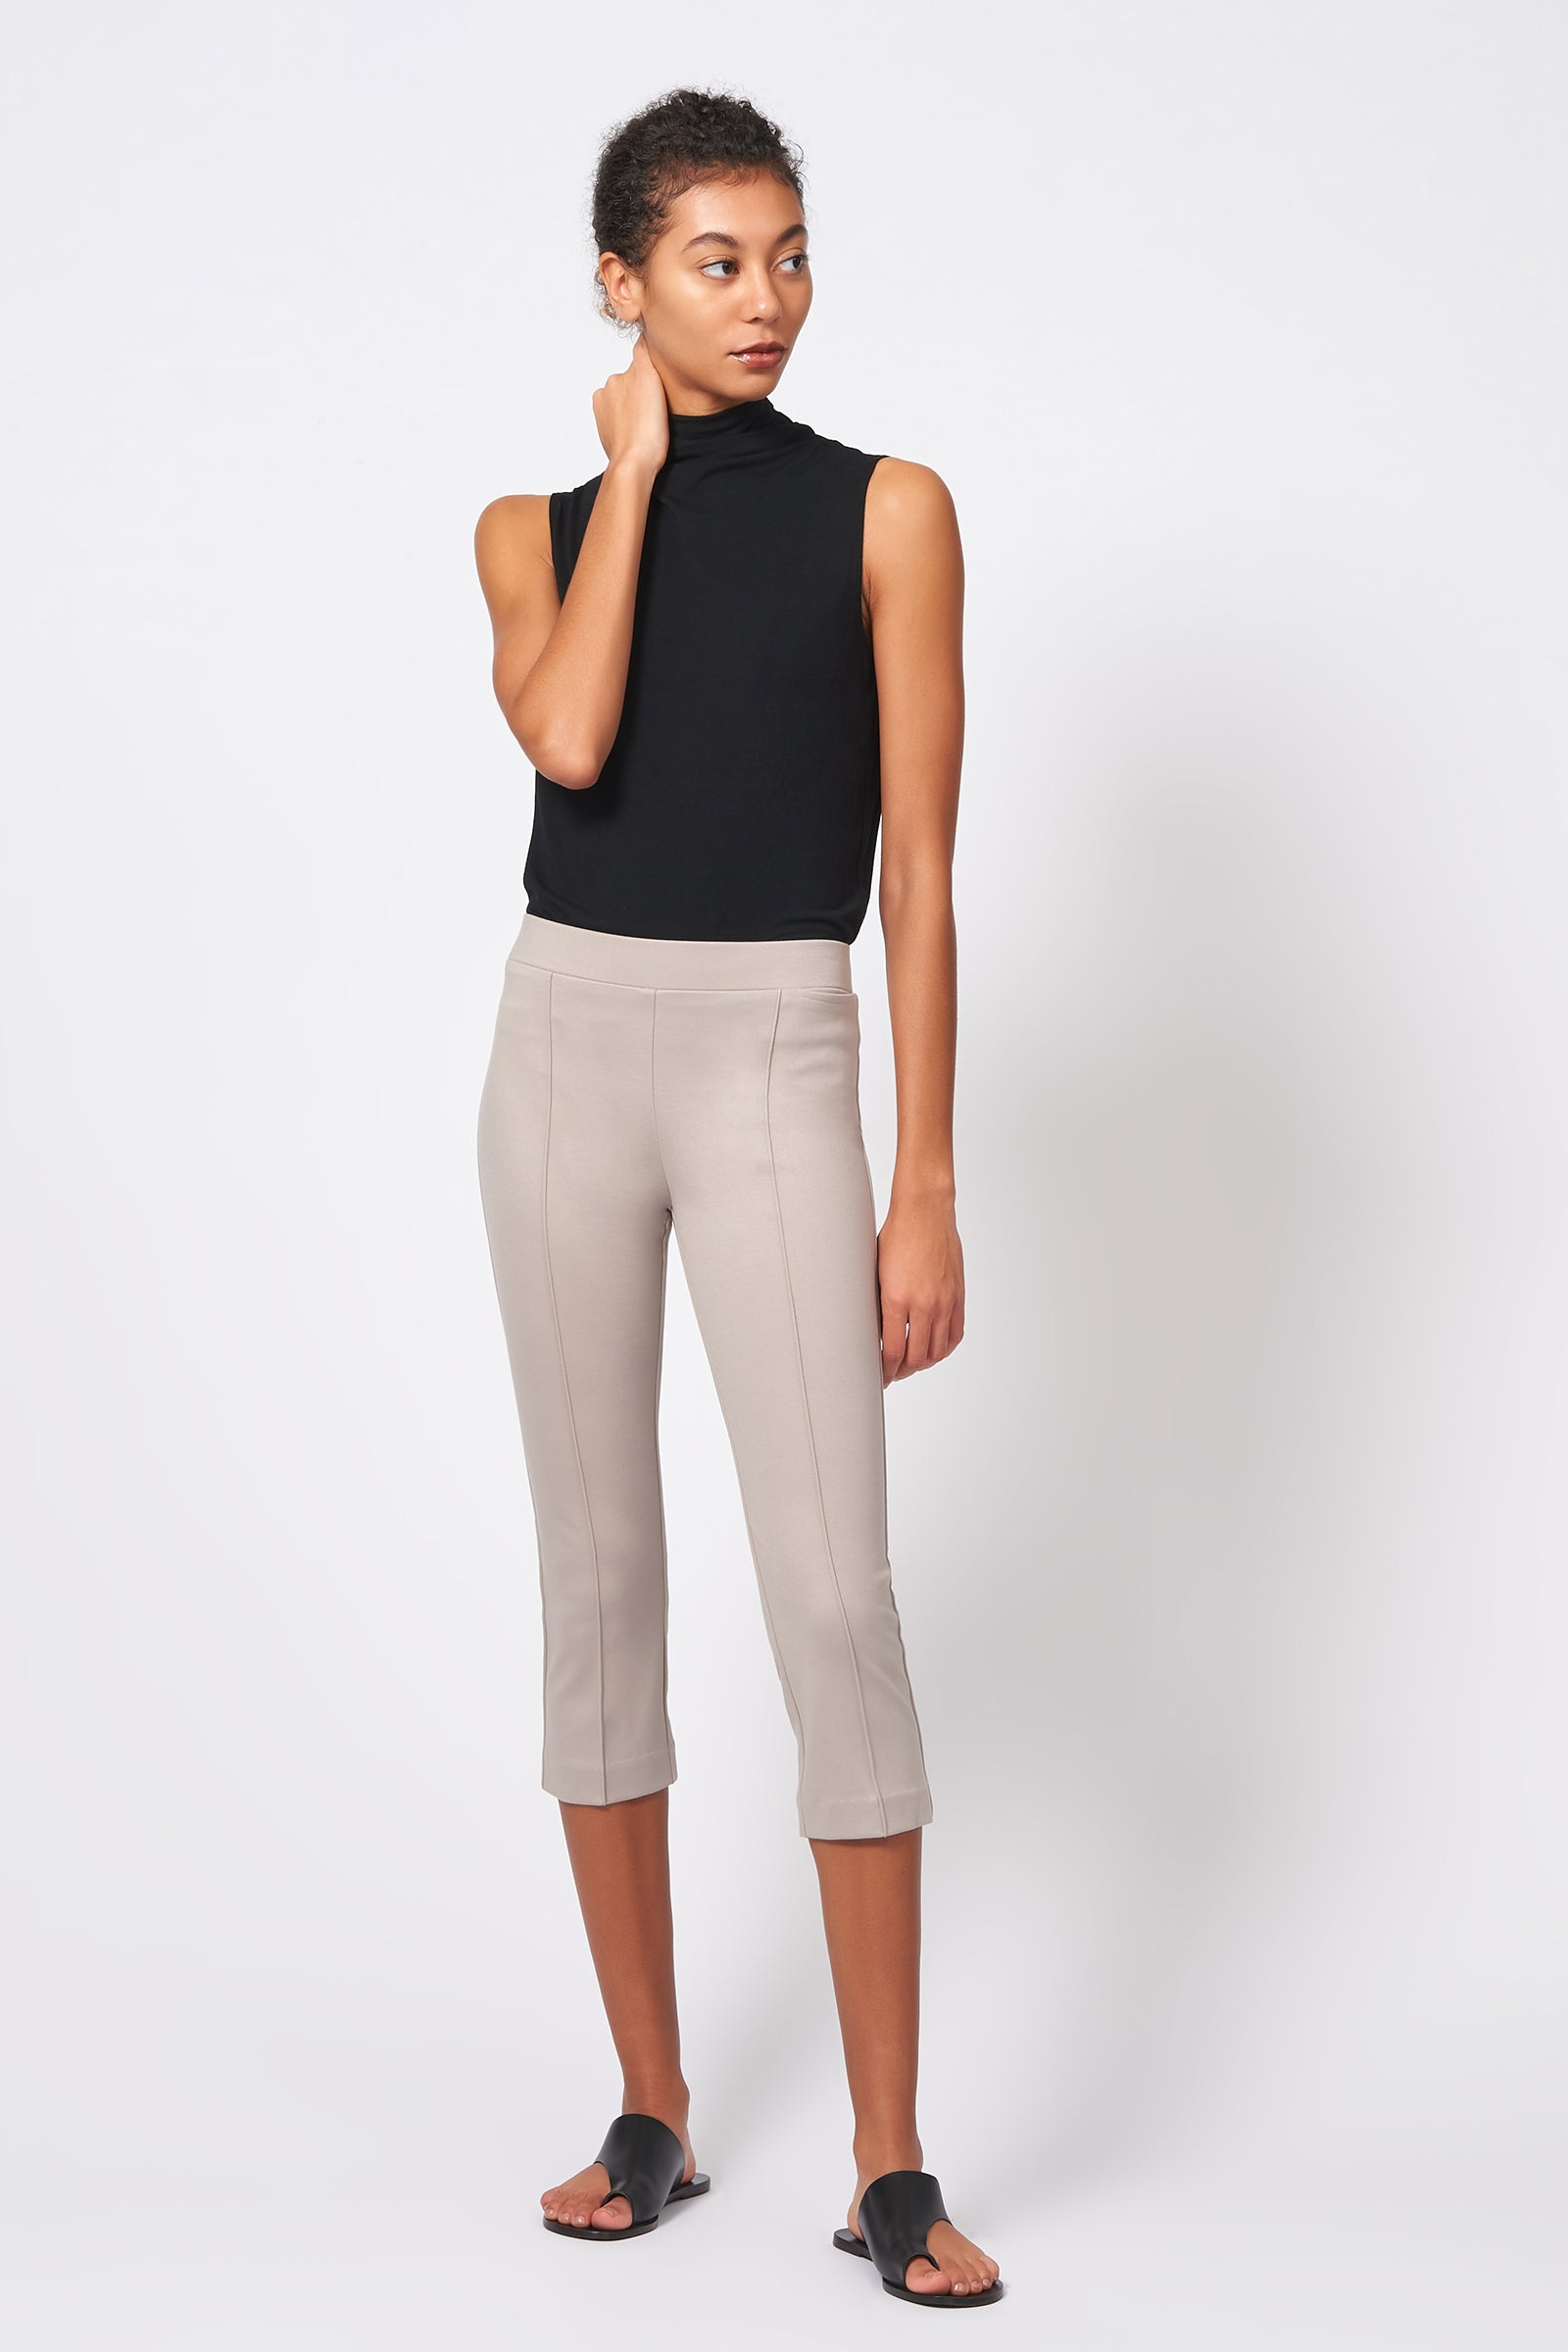 Kal Rieman Pintuck Ponte 3/4 Pant in Taupe on Model Full Front View